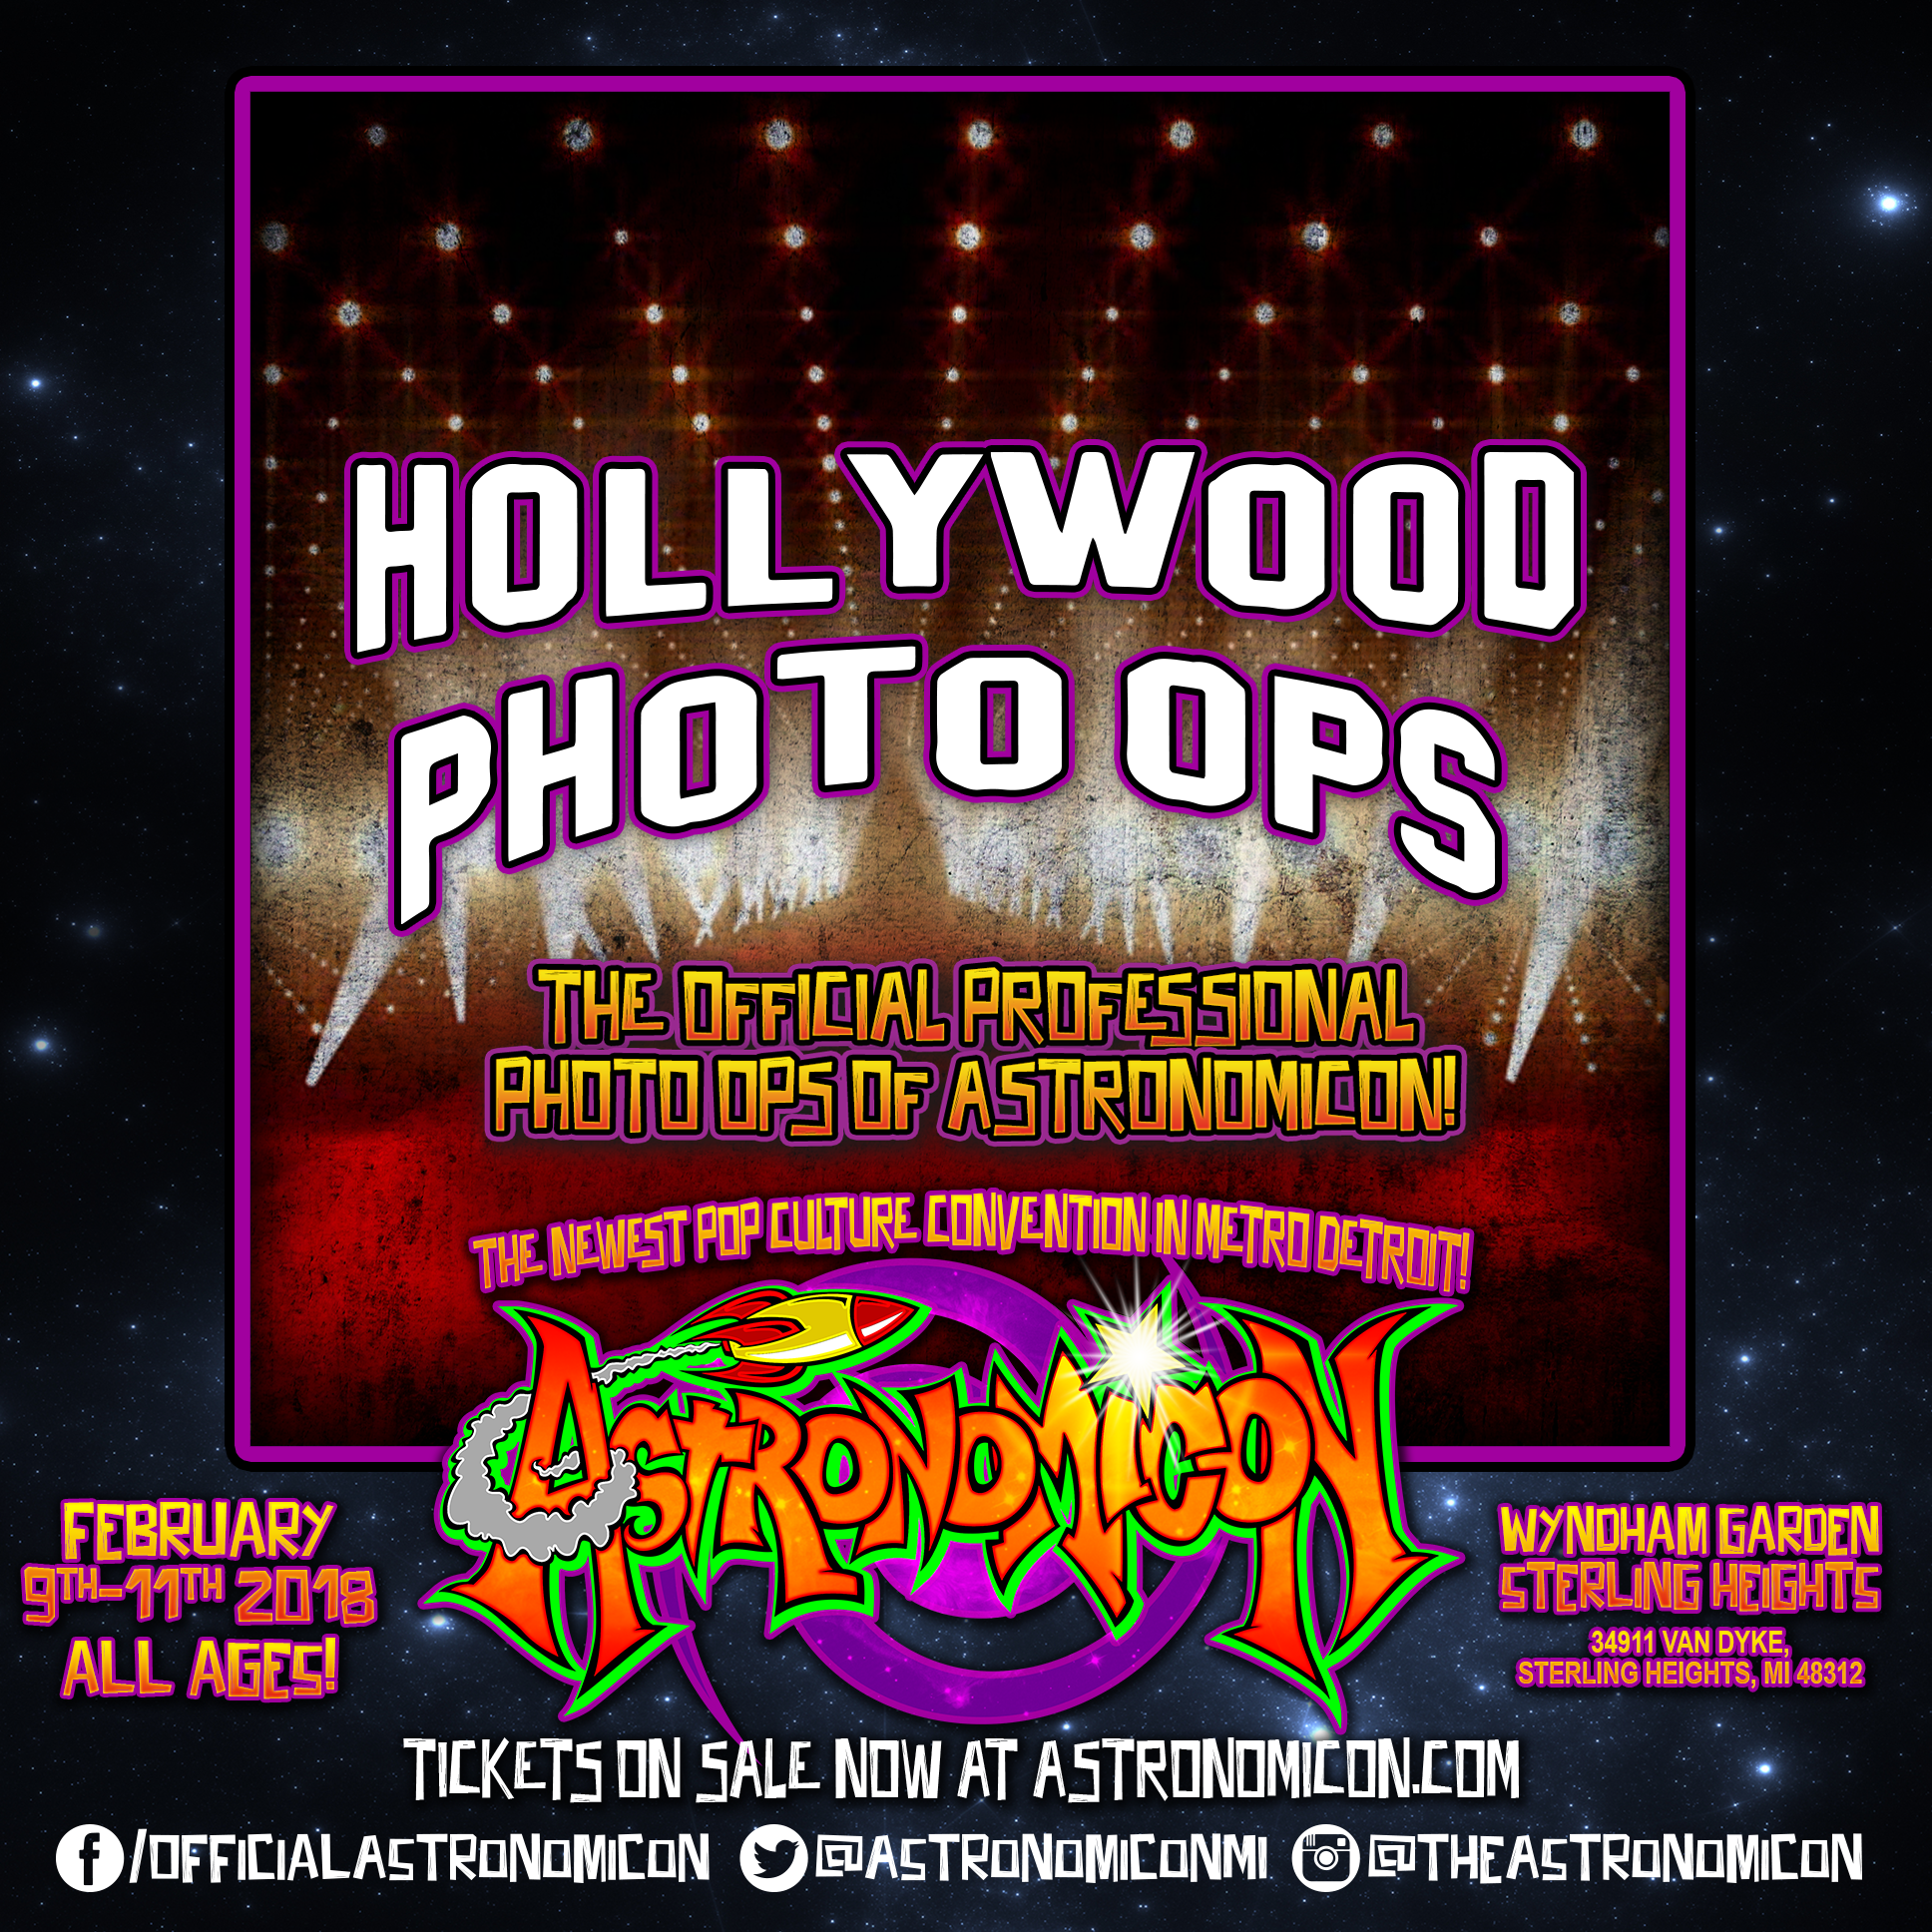 Hollywood Photo Ops -  http://hollywoodphotoops.com/